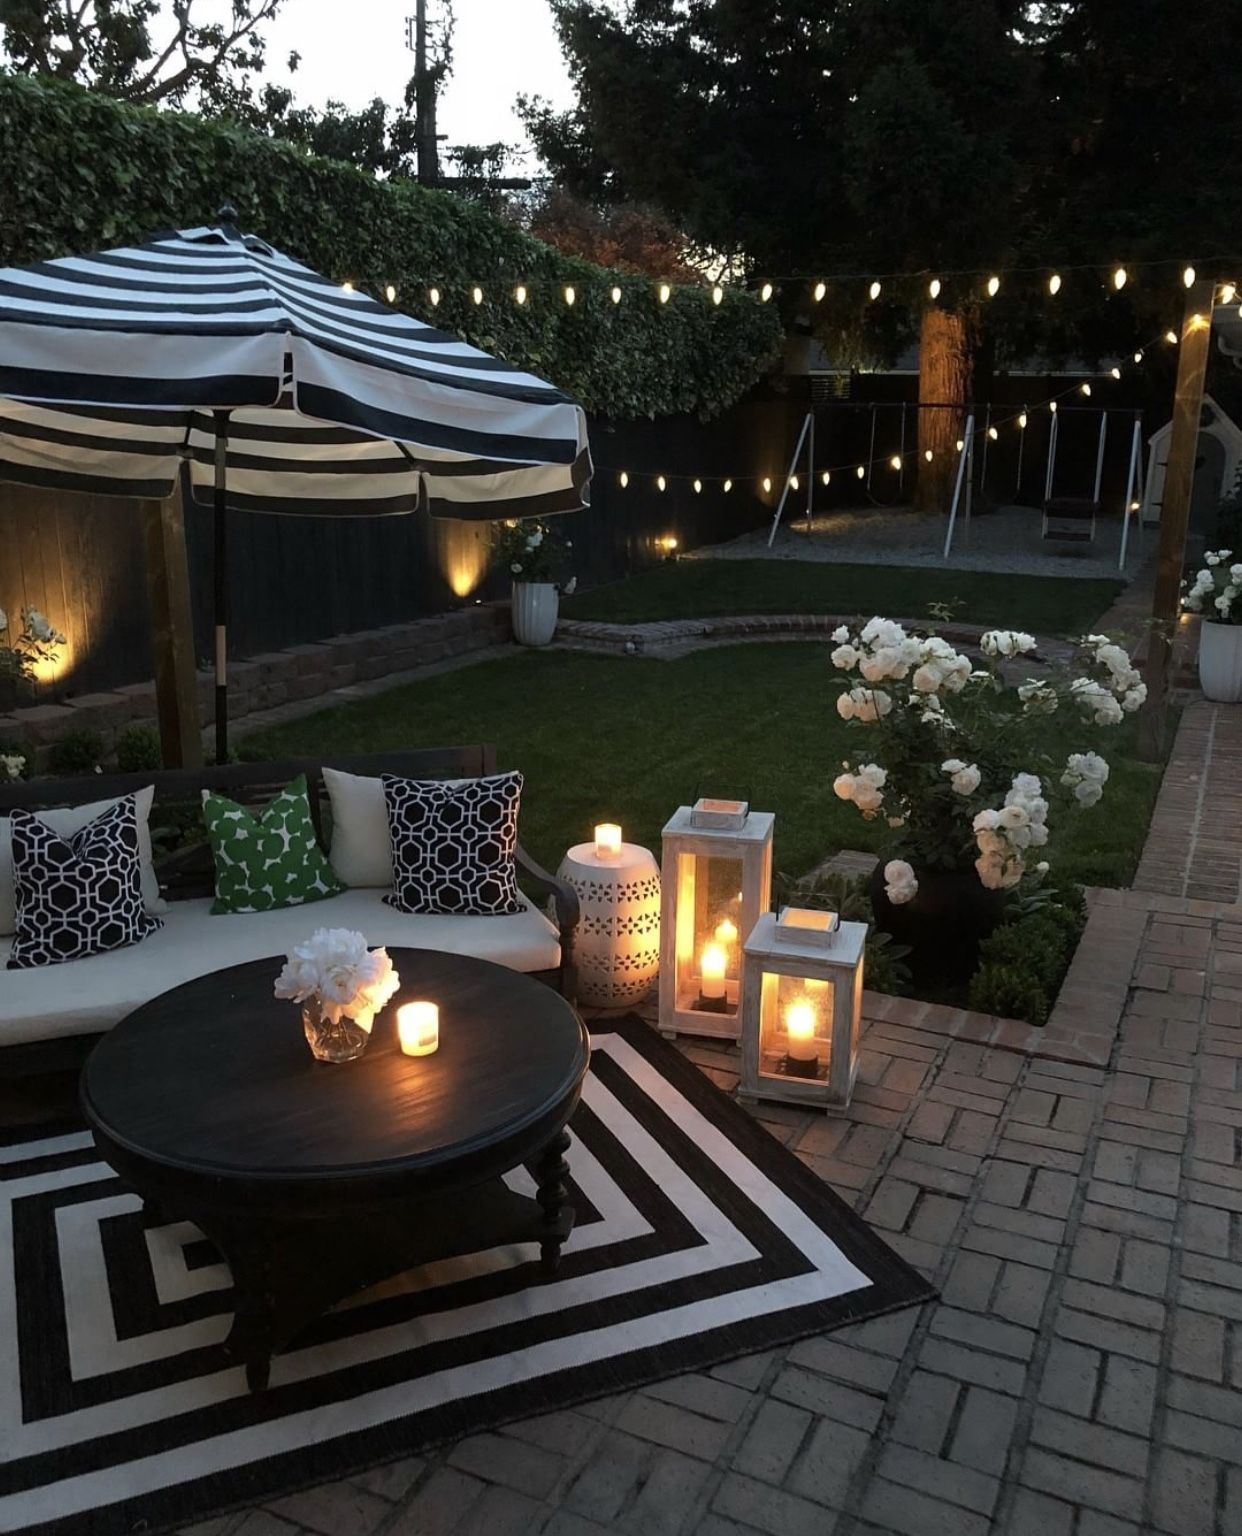 30 Small Backyard Landscaping Ideas On A Budget: 30 DIY Lighting Ideas At Night Yard Landscape With Outdoor